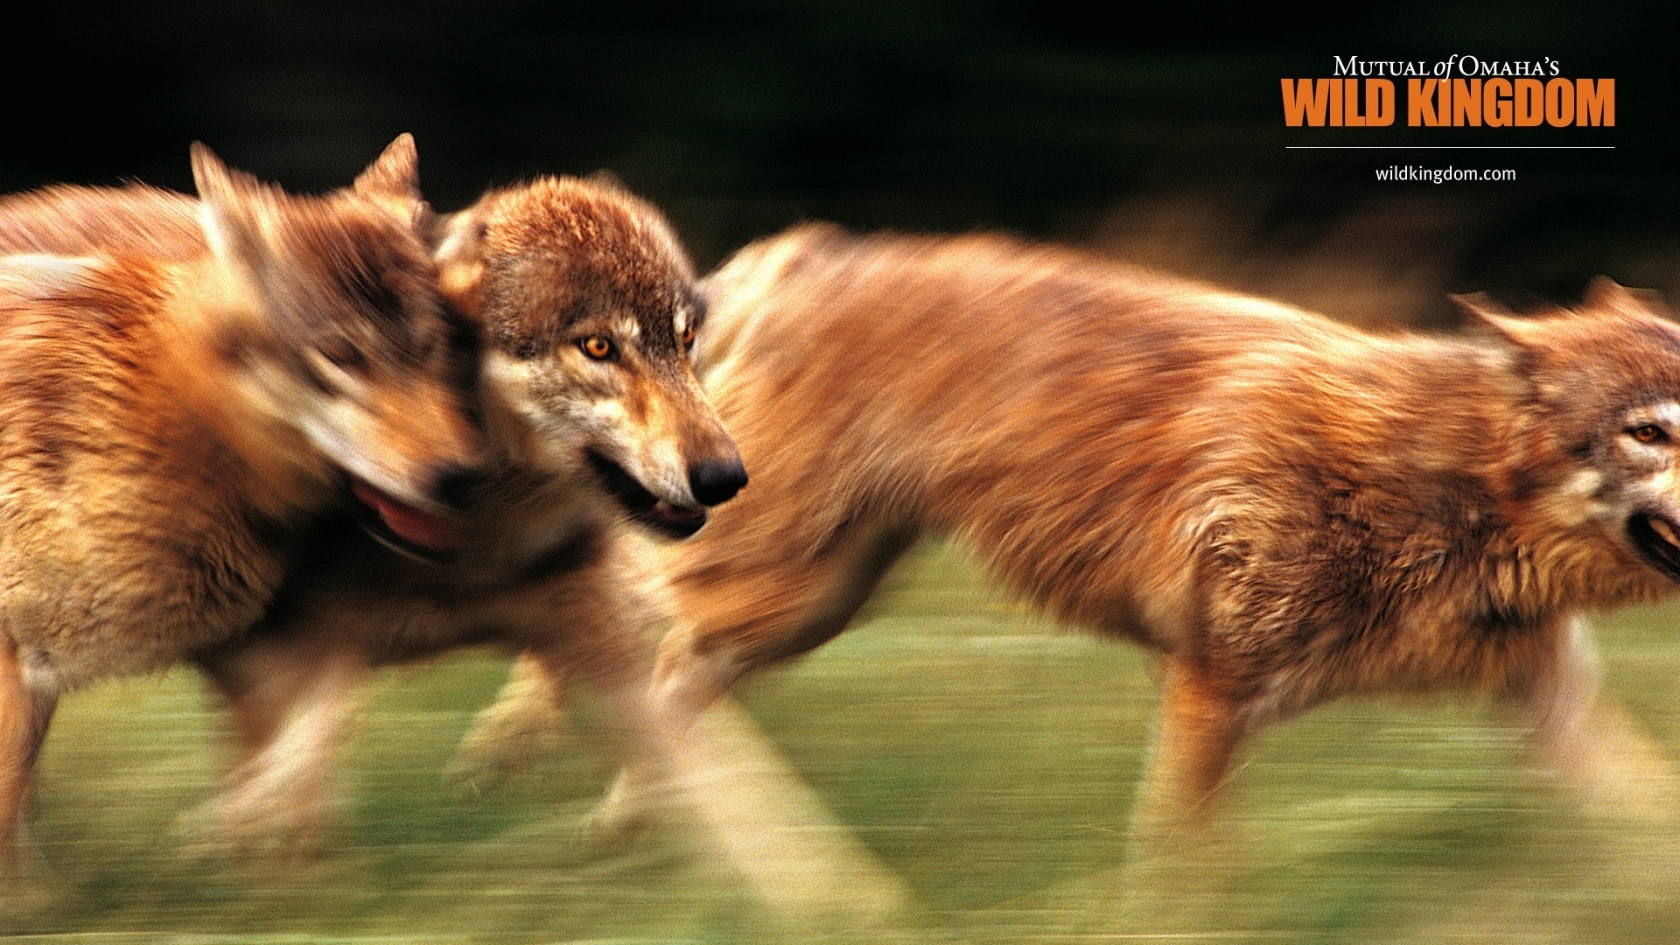 Wolves for 1680 x 945 HDTV resolution